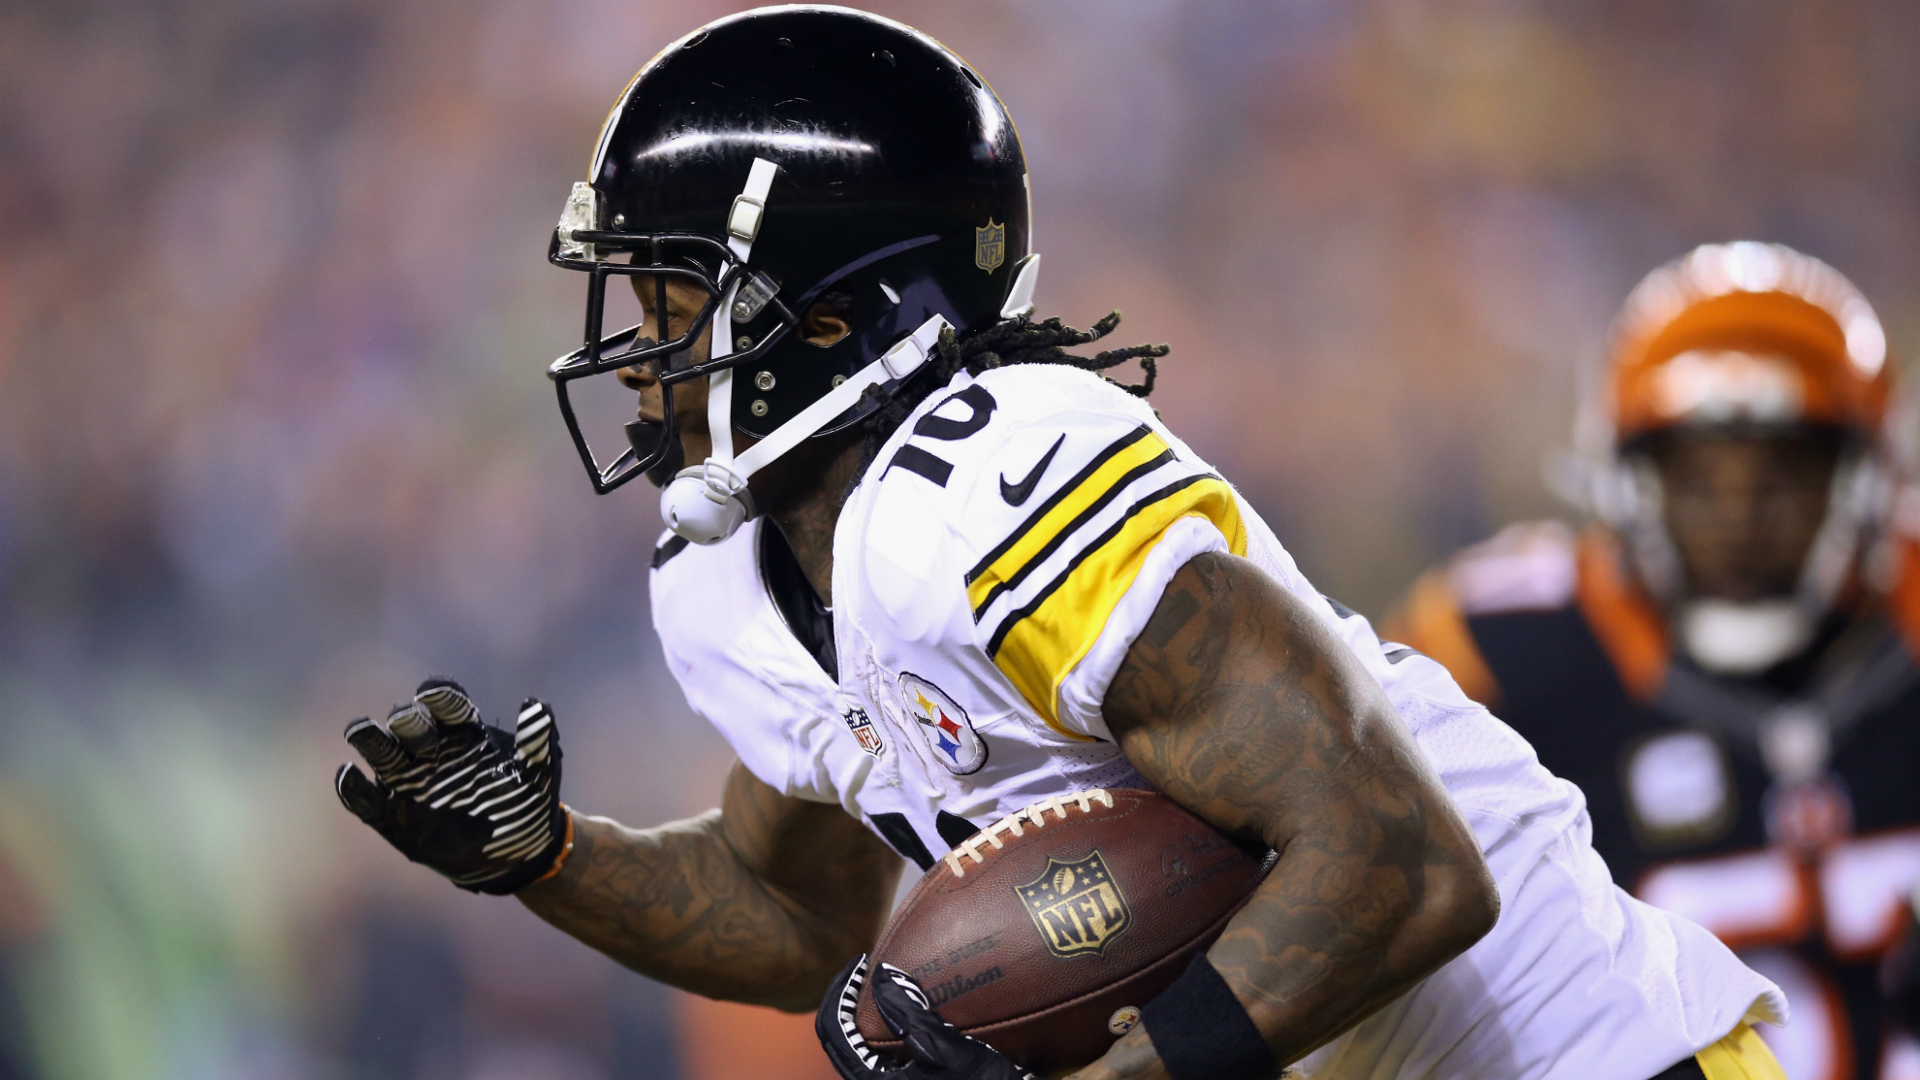 Steelers' Martavis Bryant claims Colts' Matthias Fairley's late hit was 'definitely intentional'